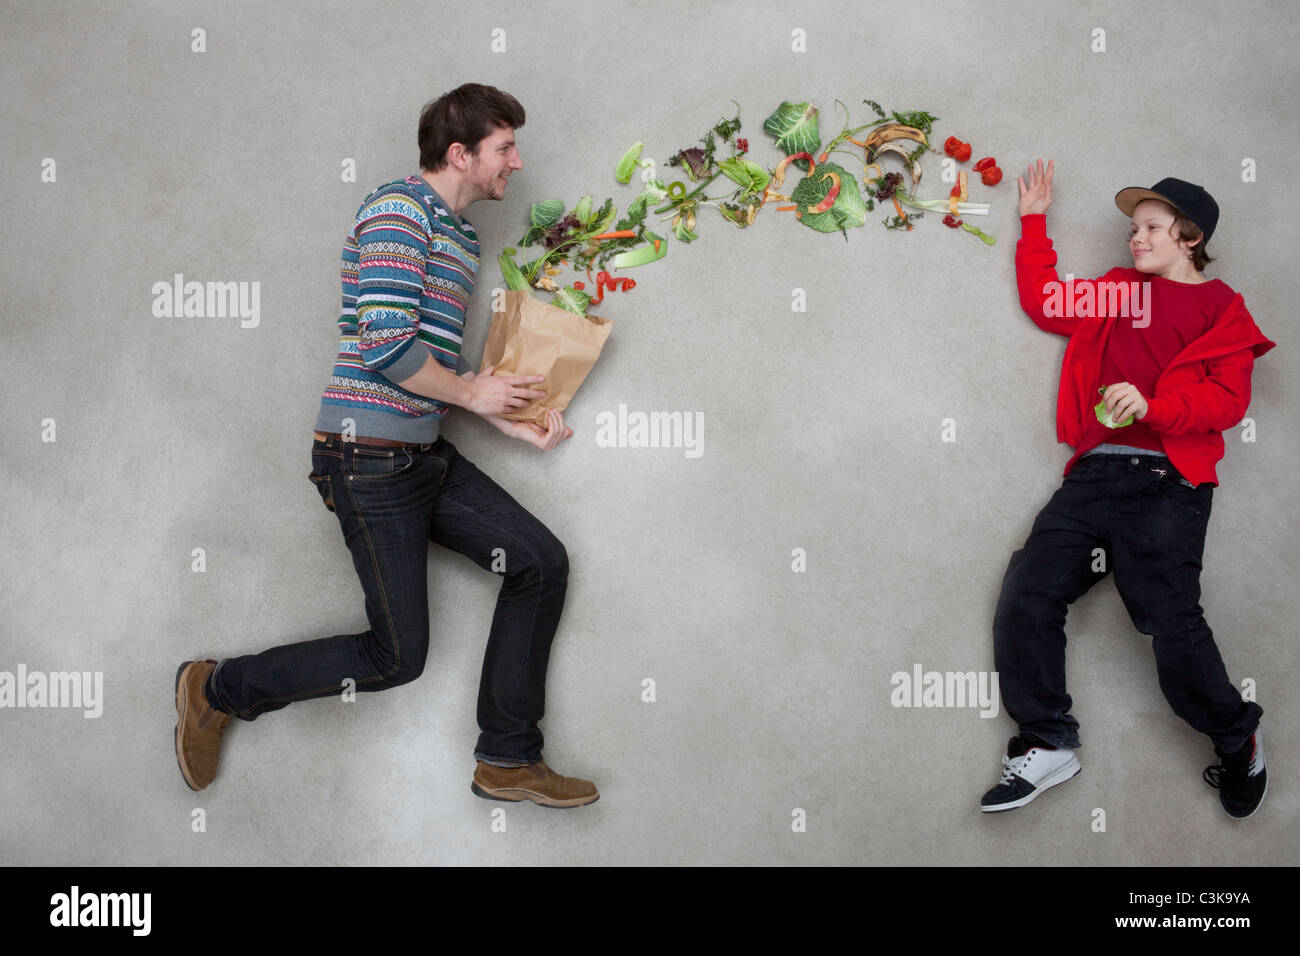 Man and boy balancing vegetables - Stock Image